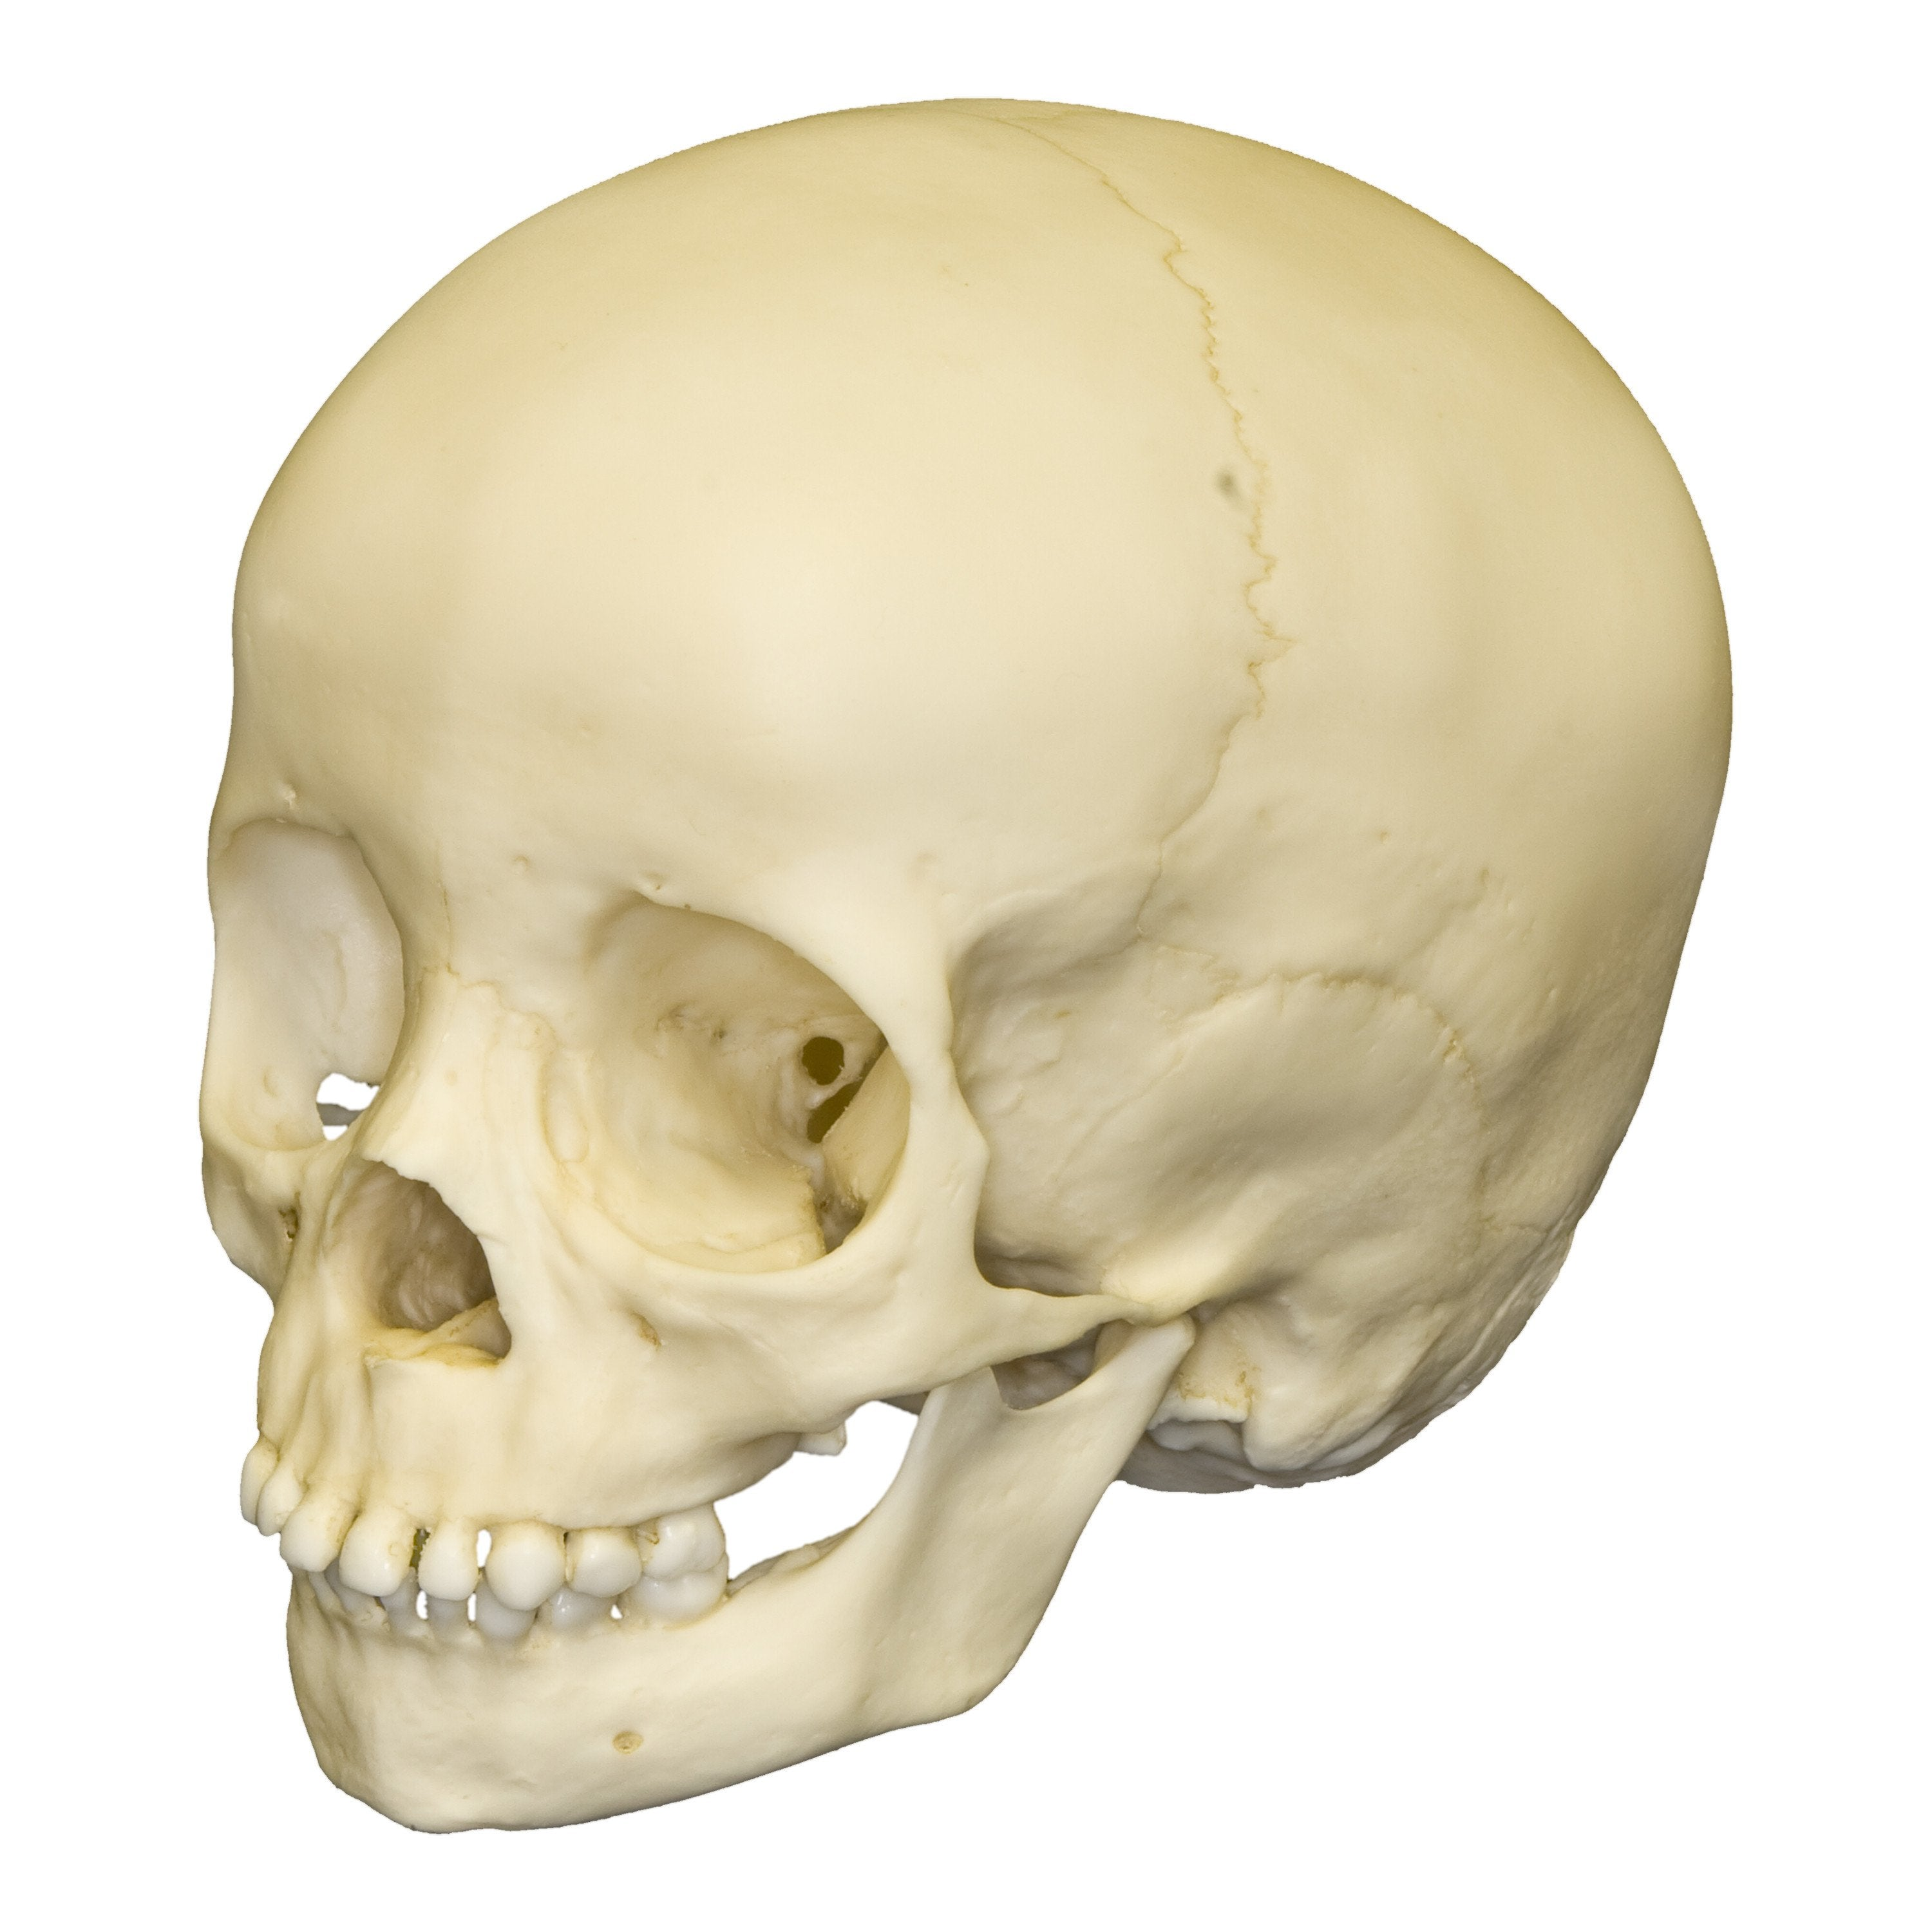 Replica 3 Year Old Human Child Skull For Sale Skulls Unlimited